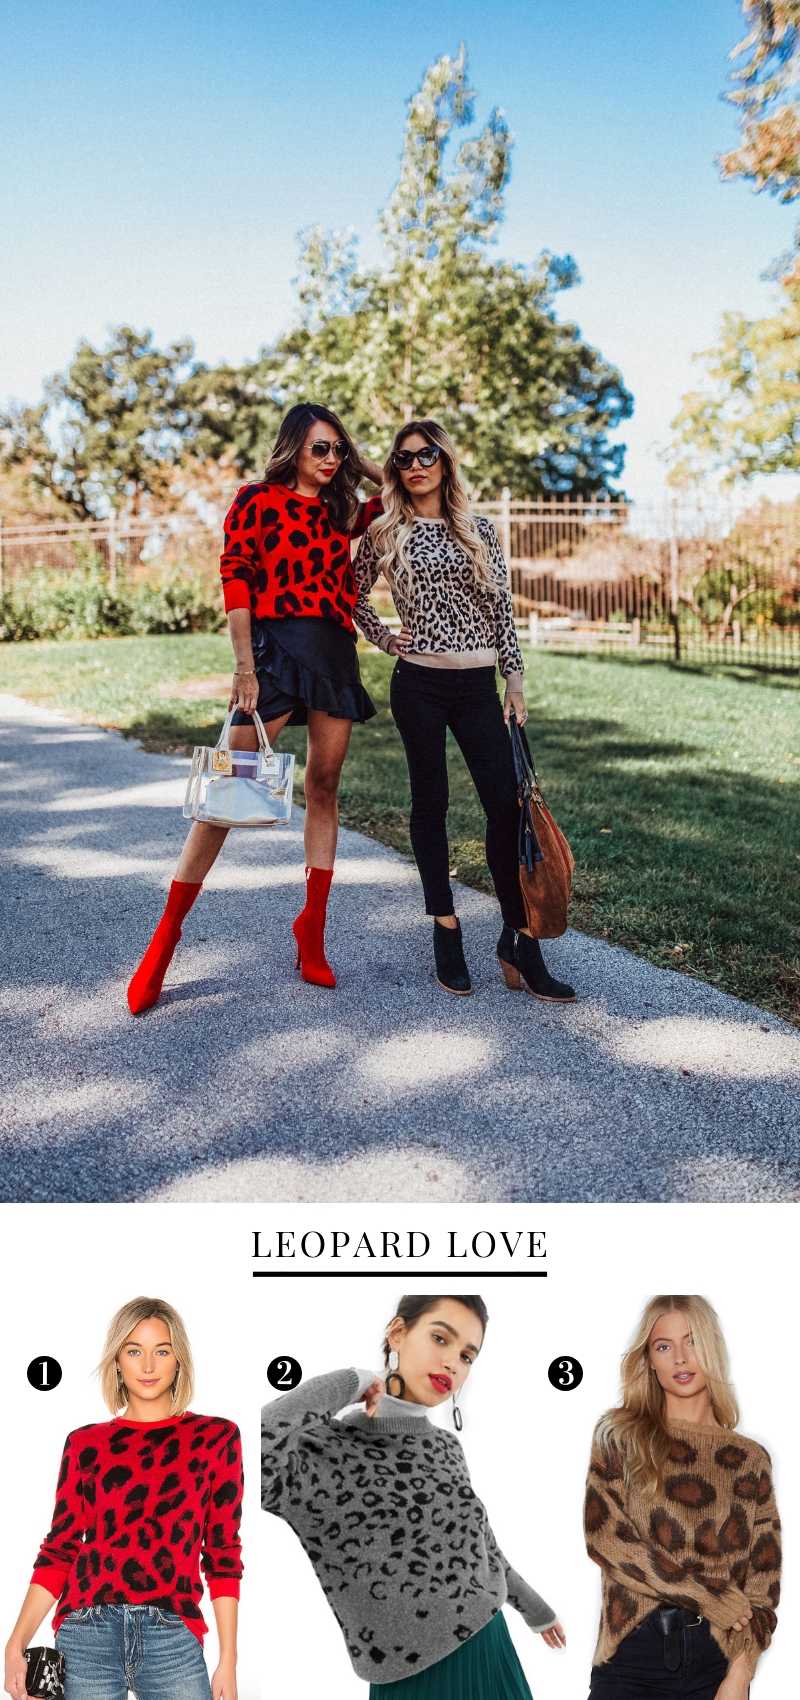 best leopard sweaters for fall, fall outfit ideas, how to style leopard print, best sweaters under $150, mom style, outfits for moms, Jennifer Worman, Red Soles and Red Wine, Fashion bloggers, style blogger, chicago bloggers